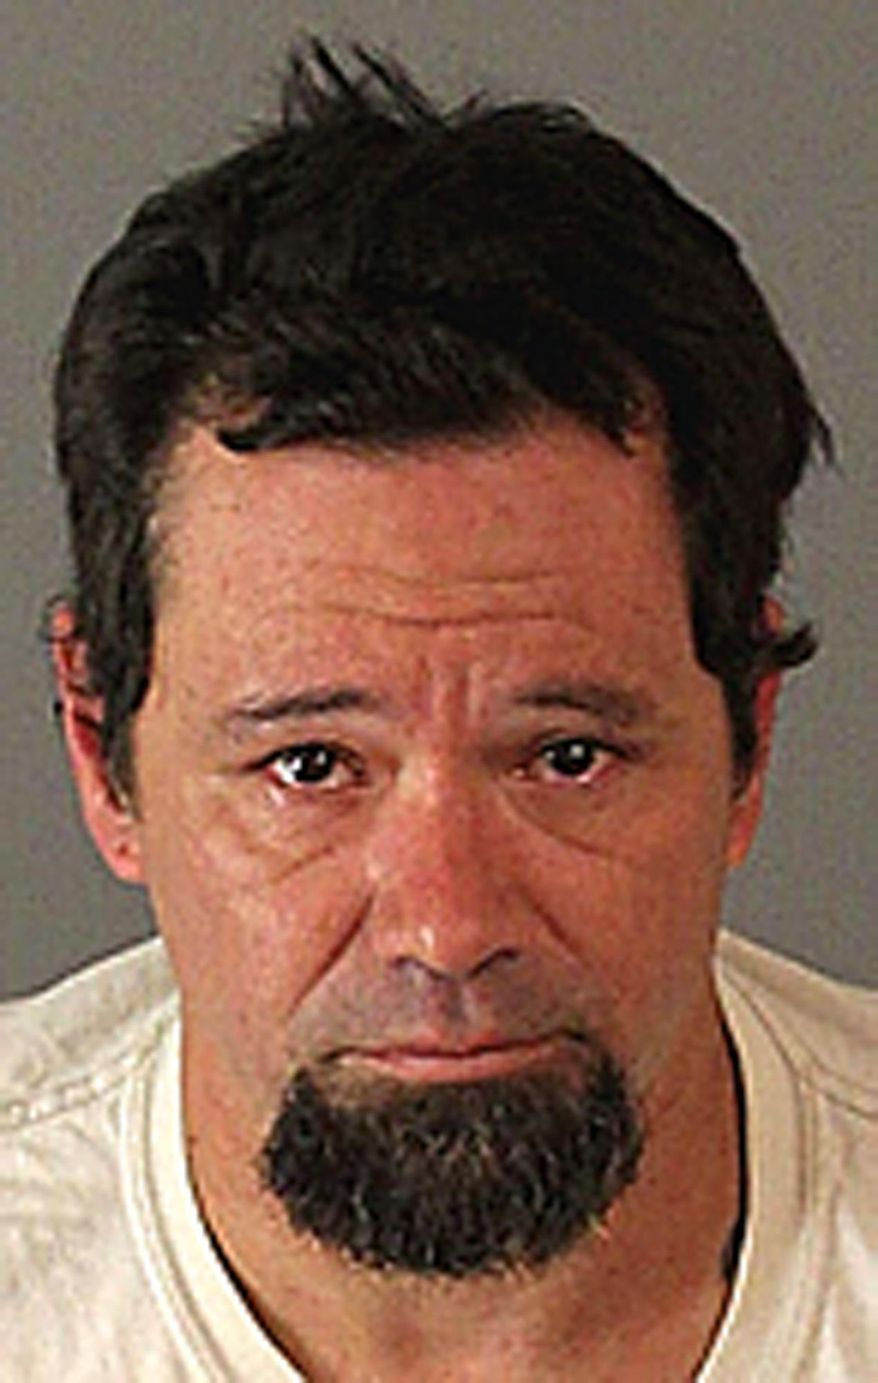 This undated booking photo provided by the Riverside County Sheriff's department show Jason Johnson who was taken into custody after allegedly breaking in to a Jurupa Valley, Calif., animal shelter and stealing dogs who were quarantined and waiting for hearings which could have caused them to be euthanized. The Press-Enterprise reports that Riverside County Sheriff's officials announced the suspect Wednesday, Sept. 16, 2015, in the break-in. (Riverside County Sheriffs Department via AP)